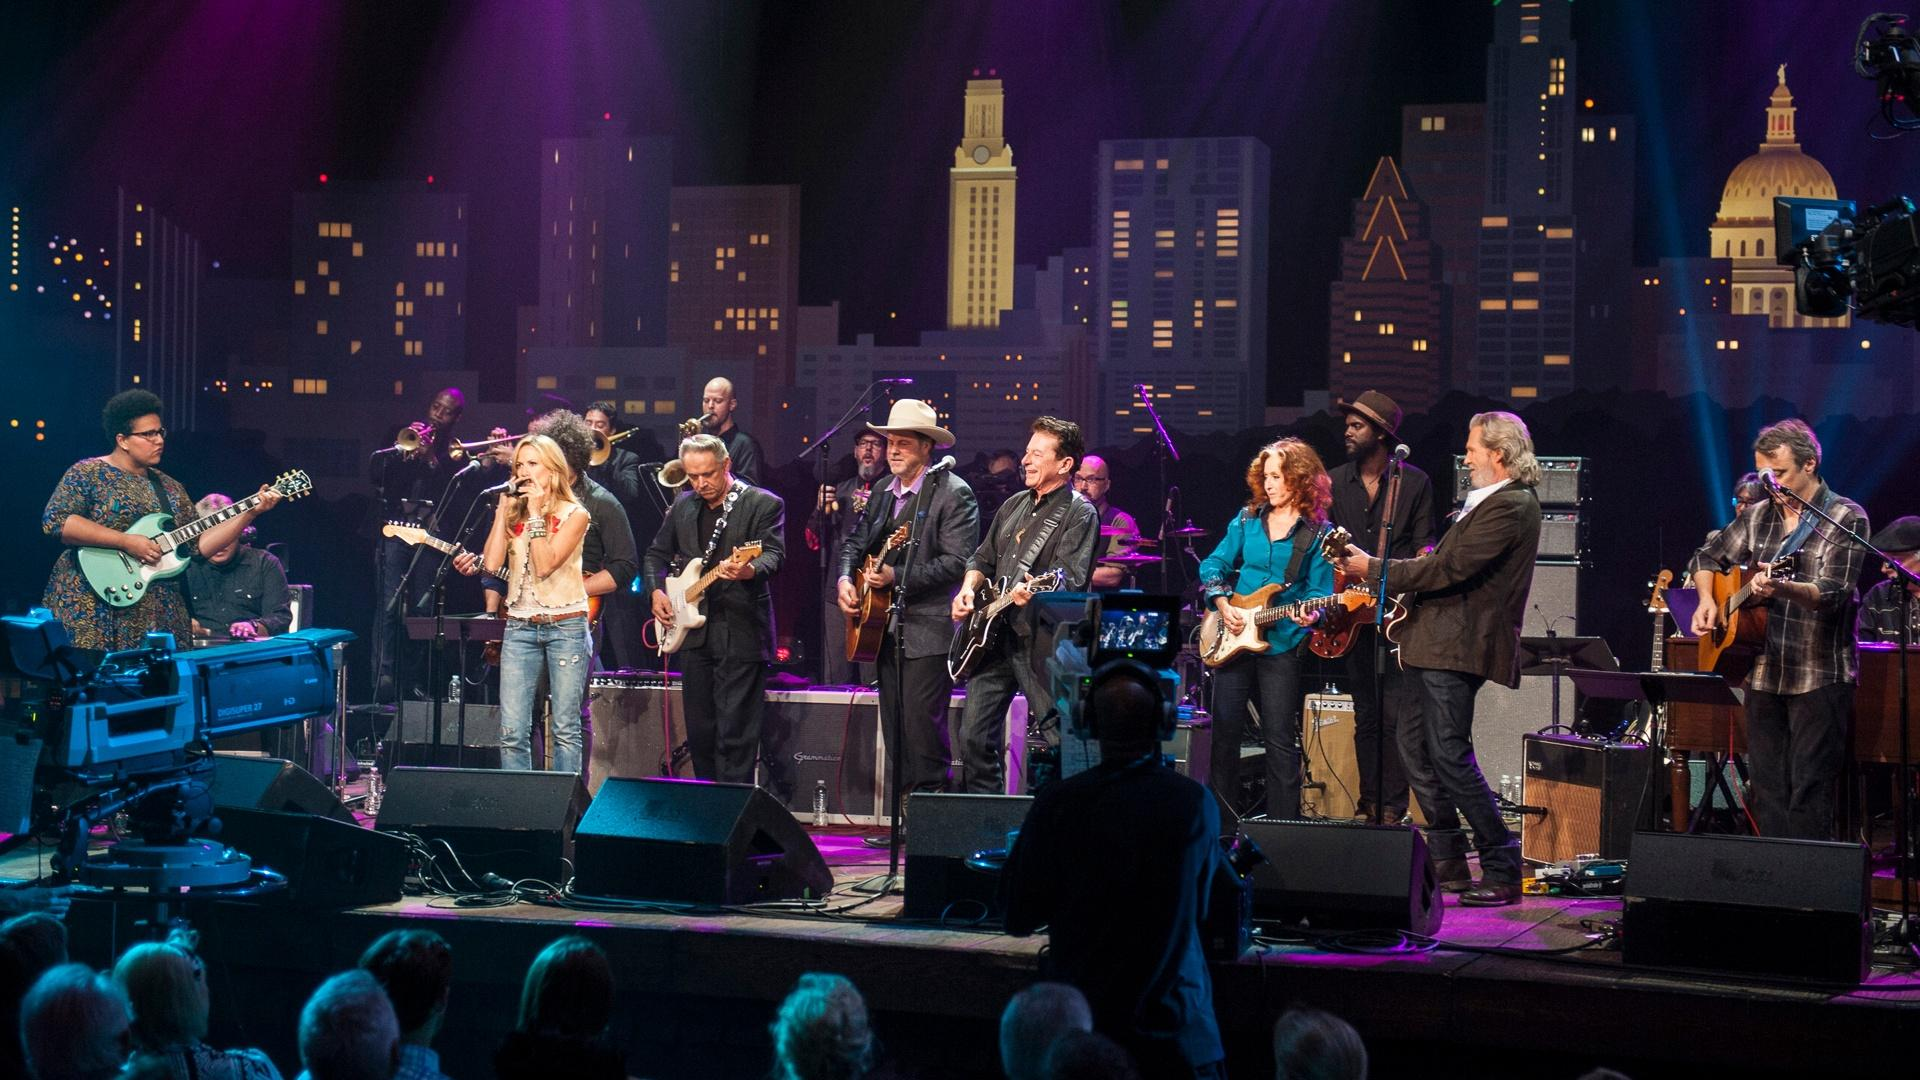 Image result for Austin City Limits images